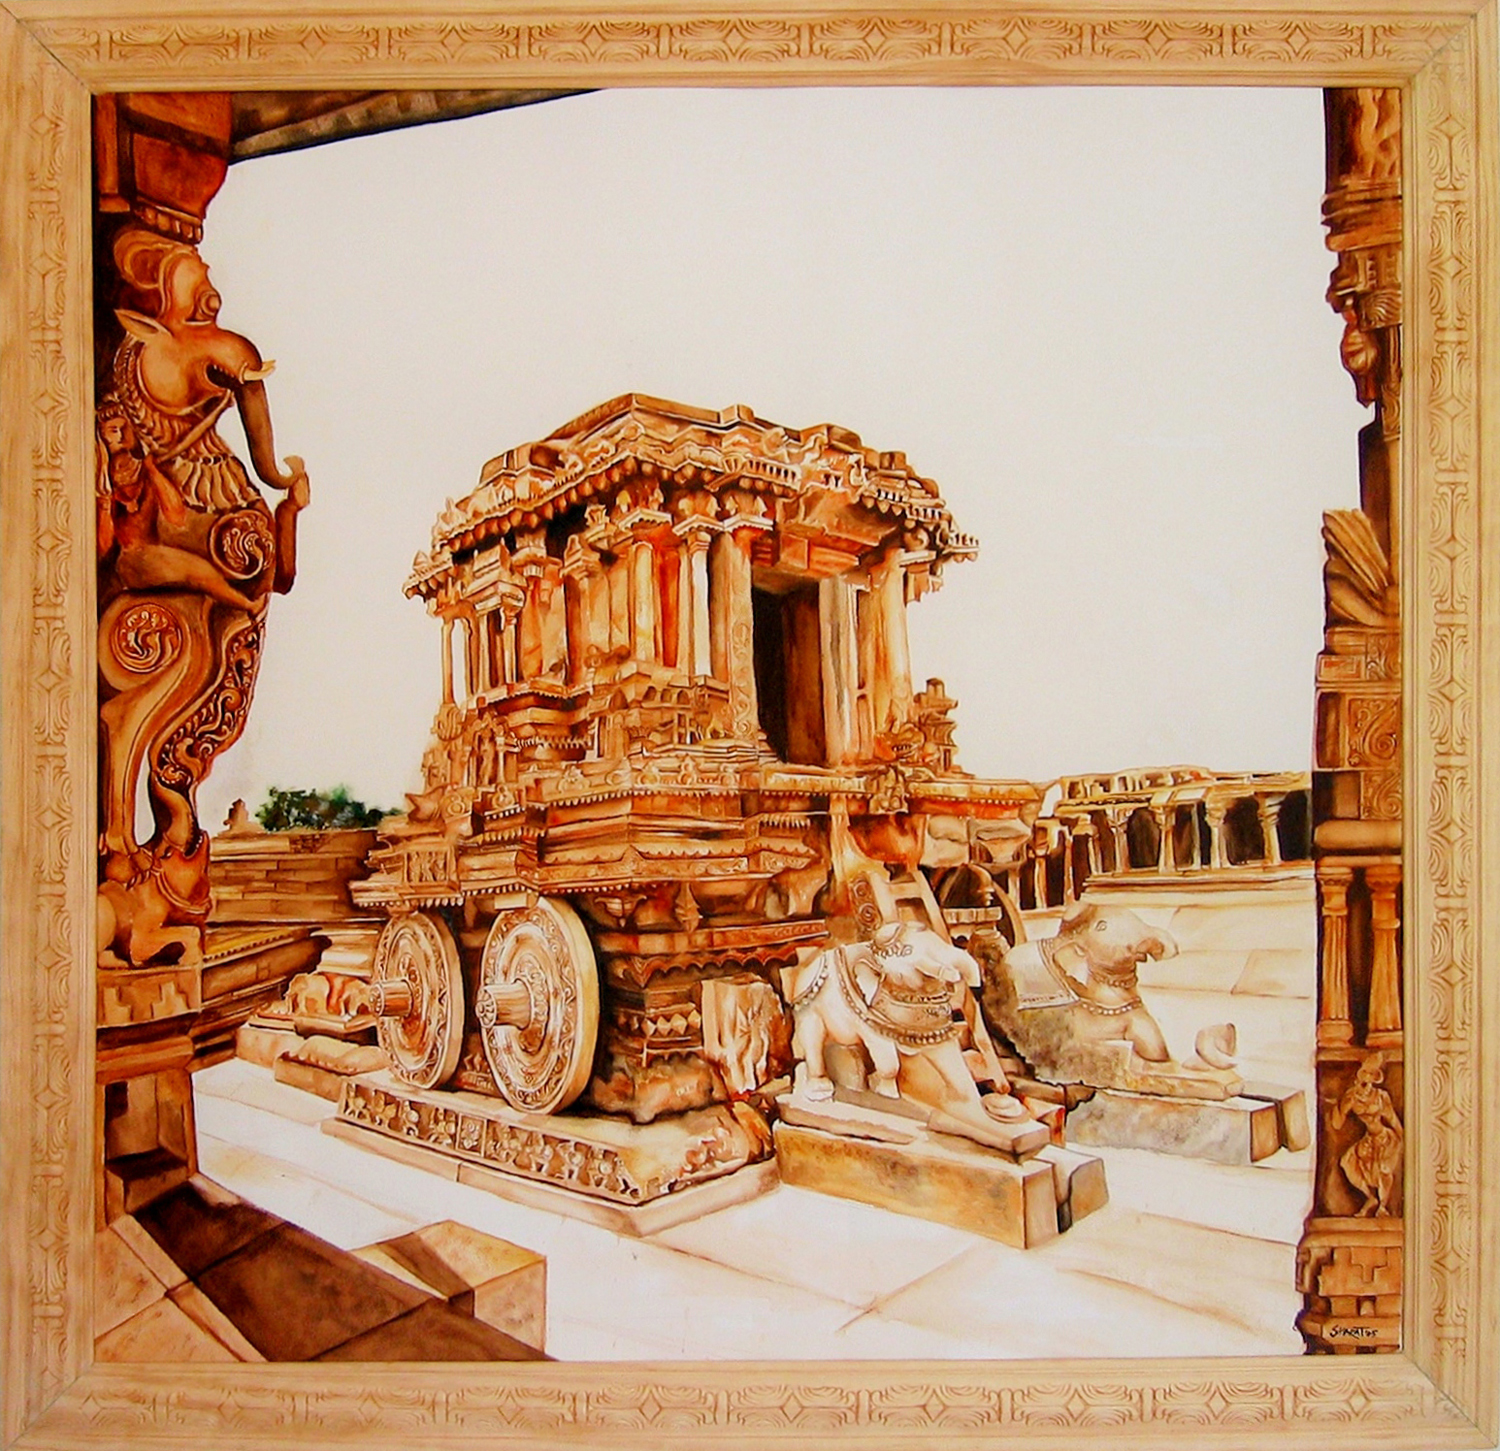 Stone Chariot at Hampi